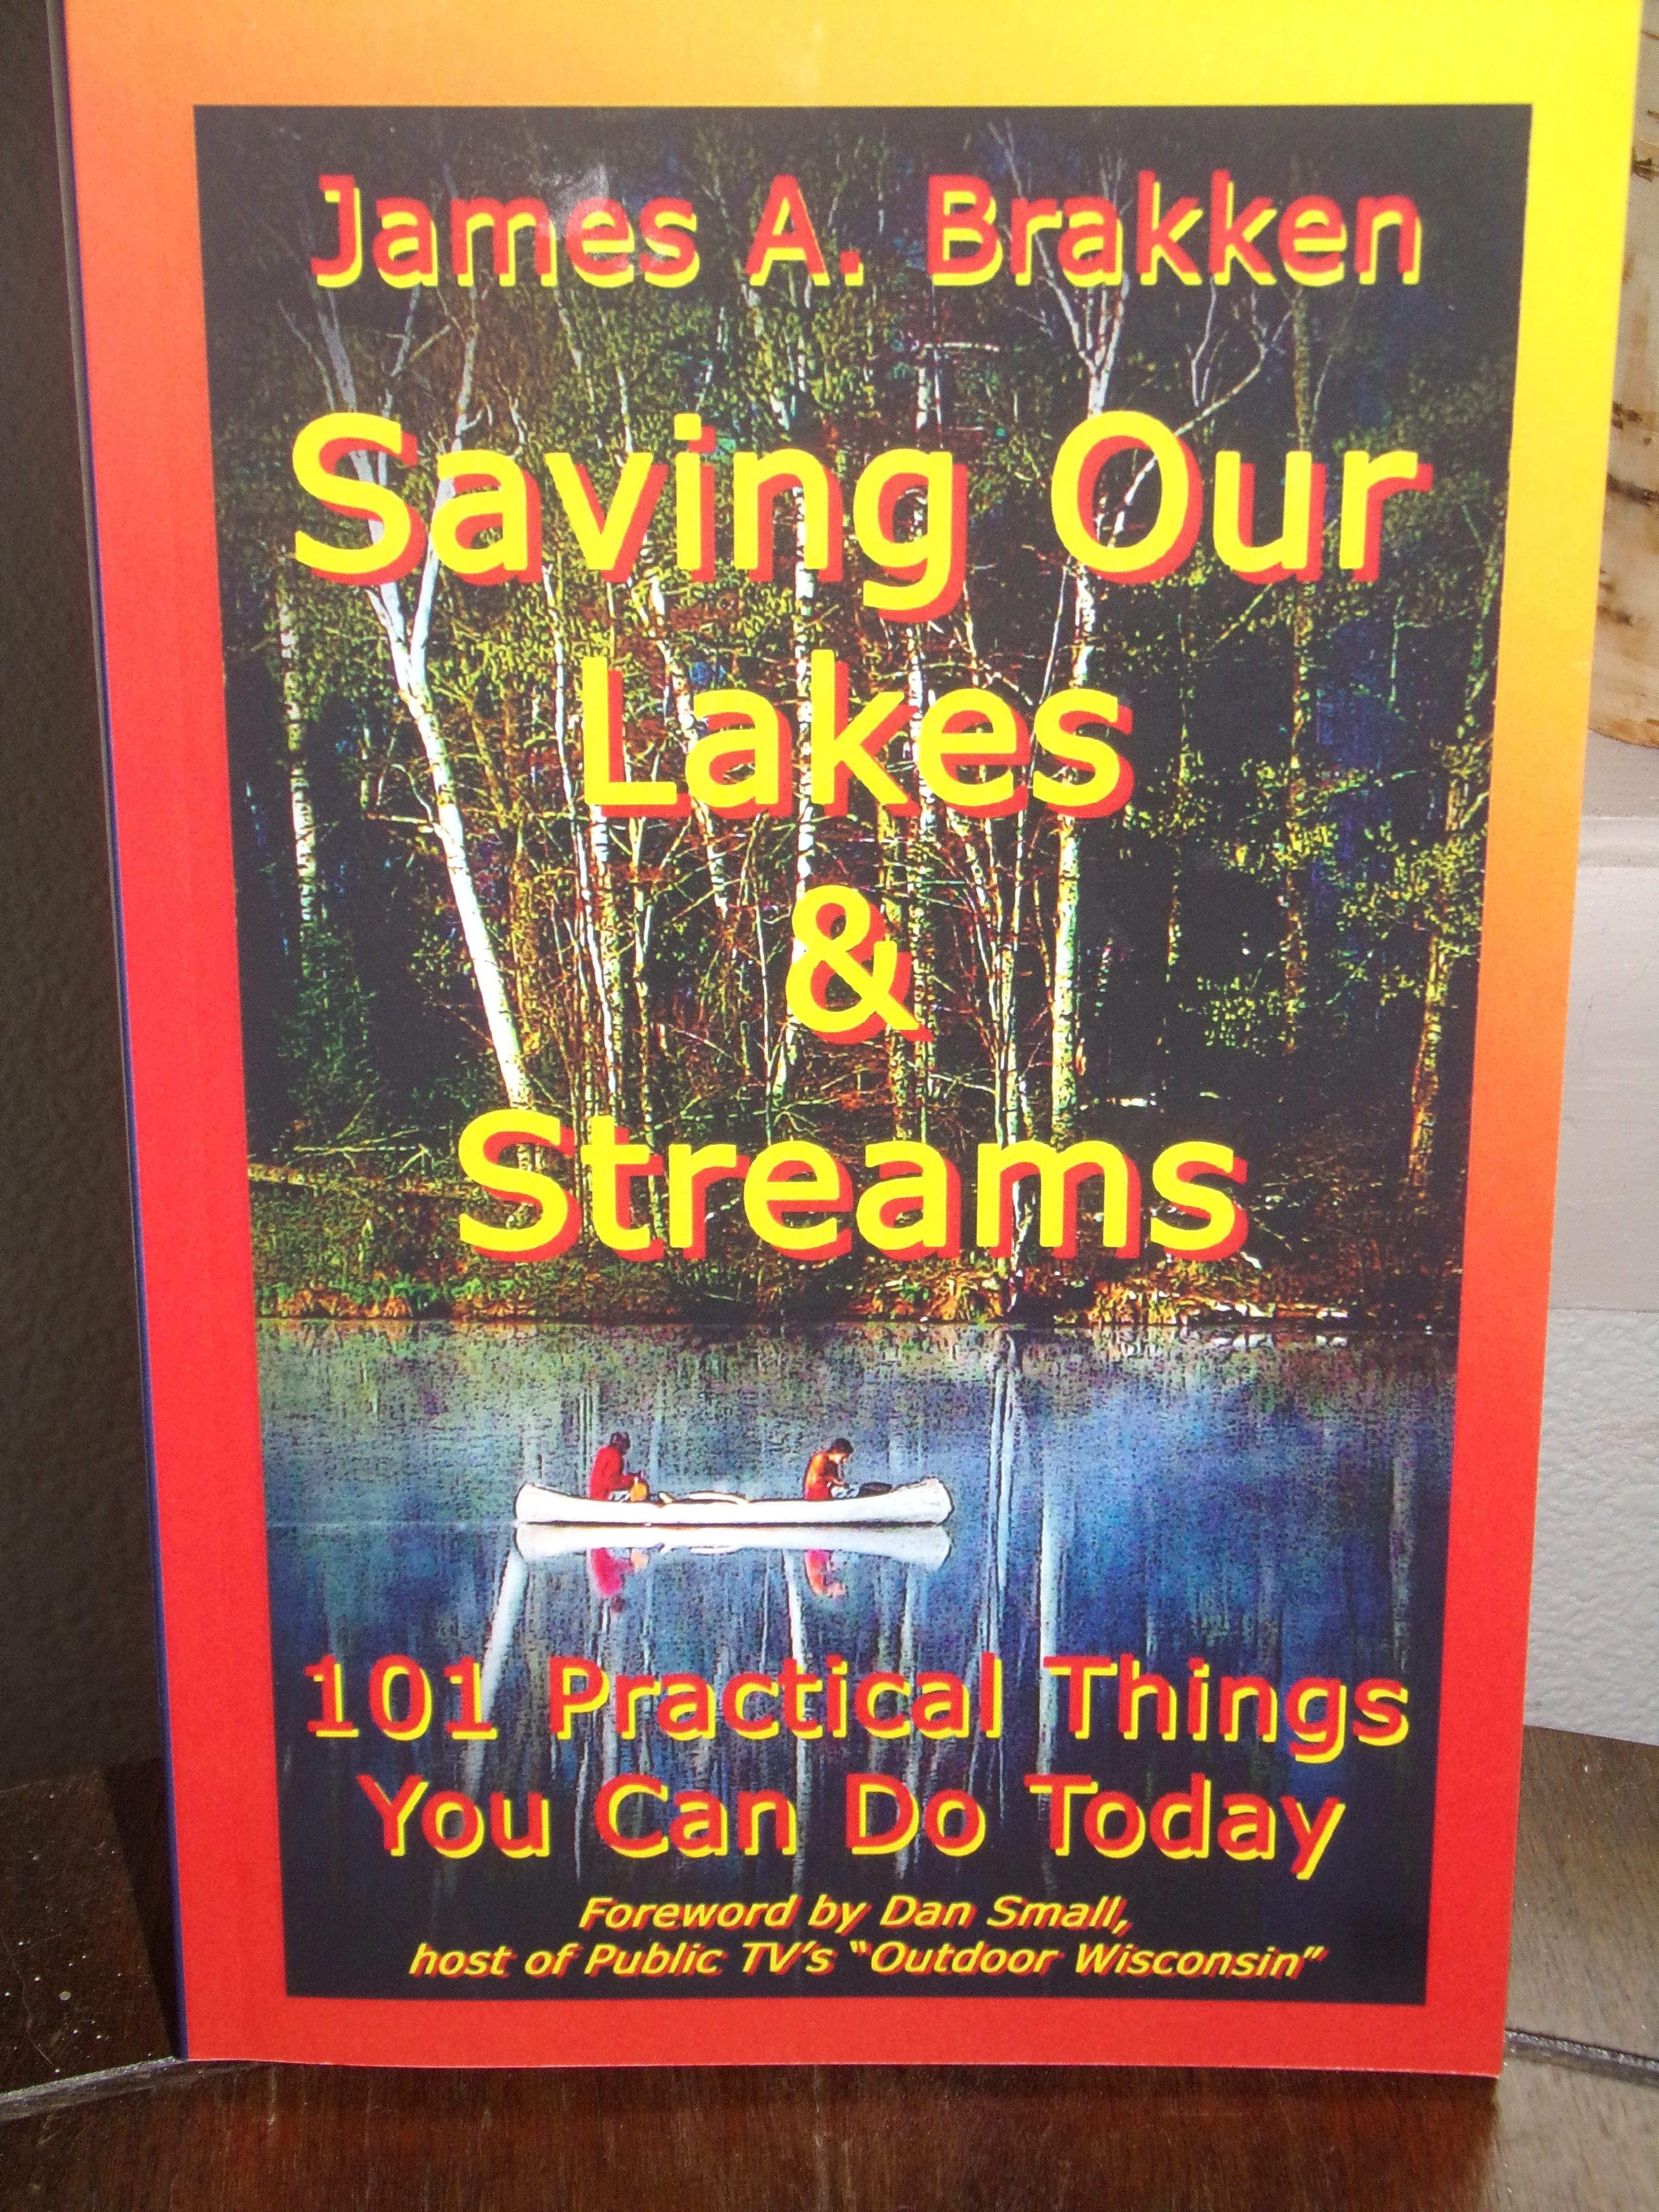 Saving Our Lakes & Streams—101 Practical Things You Can Do Today